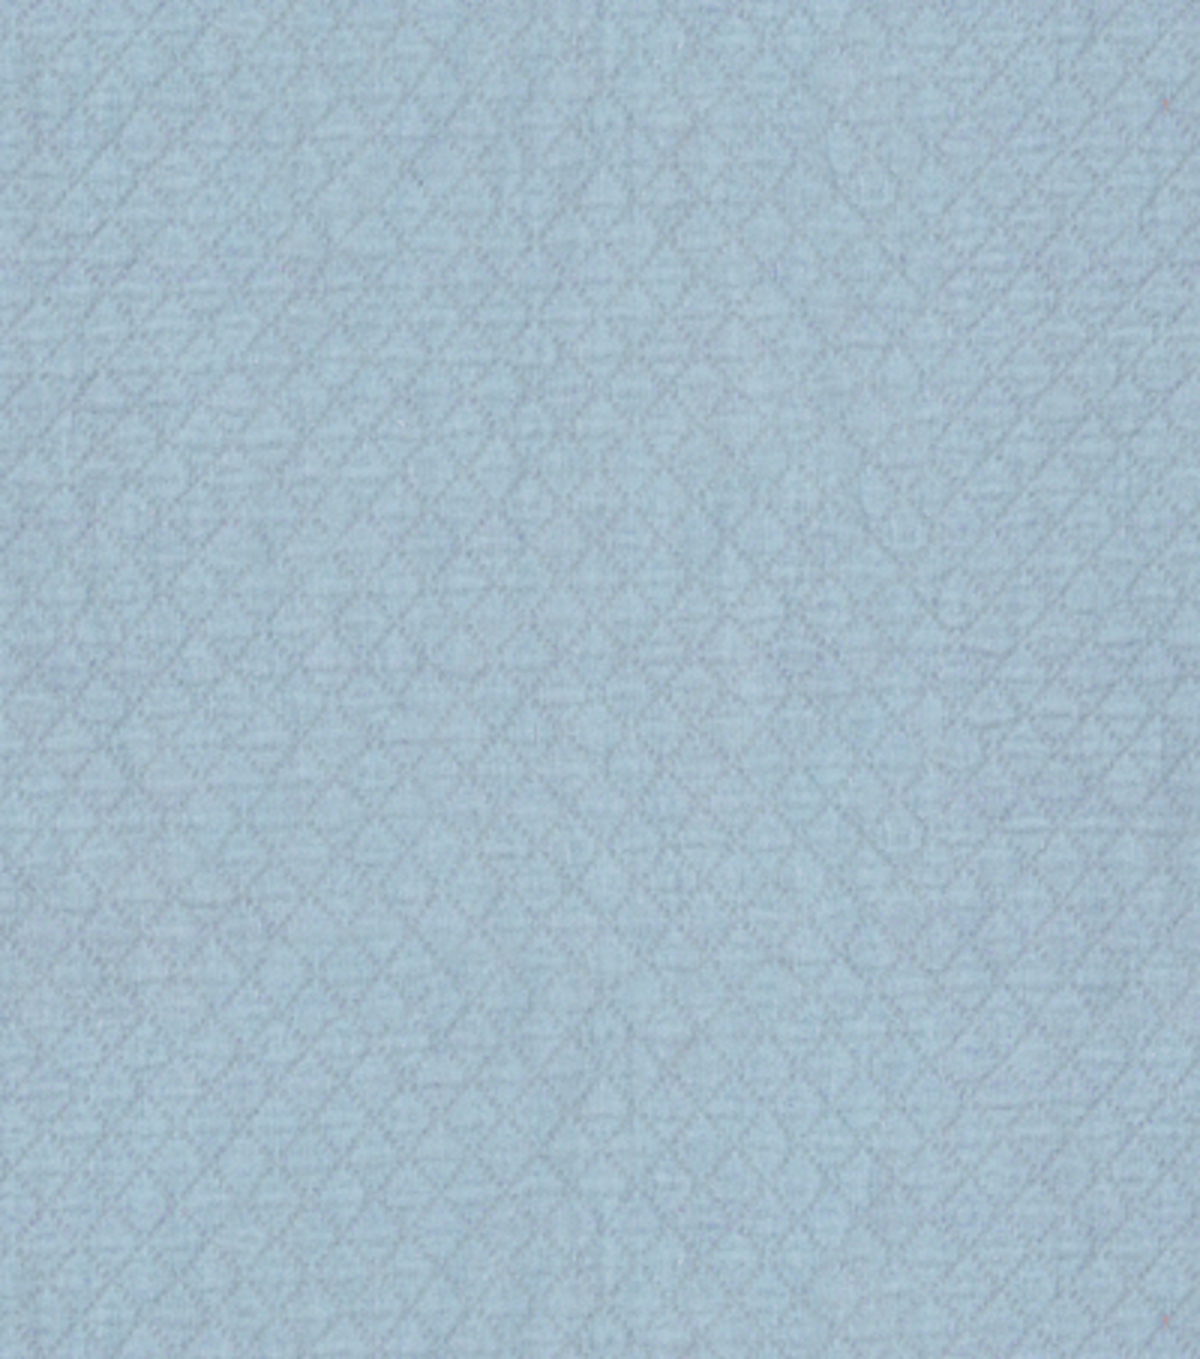 Home Decor 8\u0022x8\u0022 Fabric Swatch-Covington Diamondz